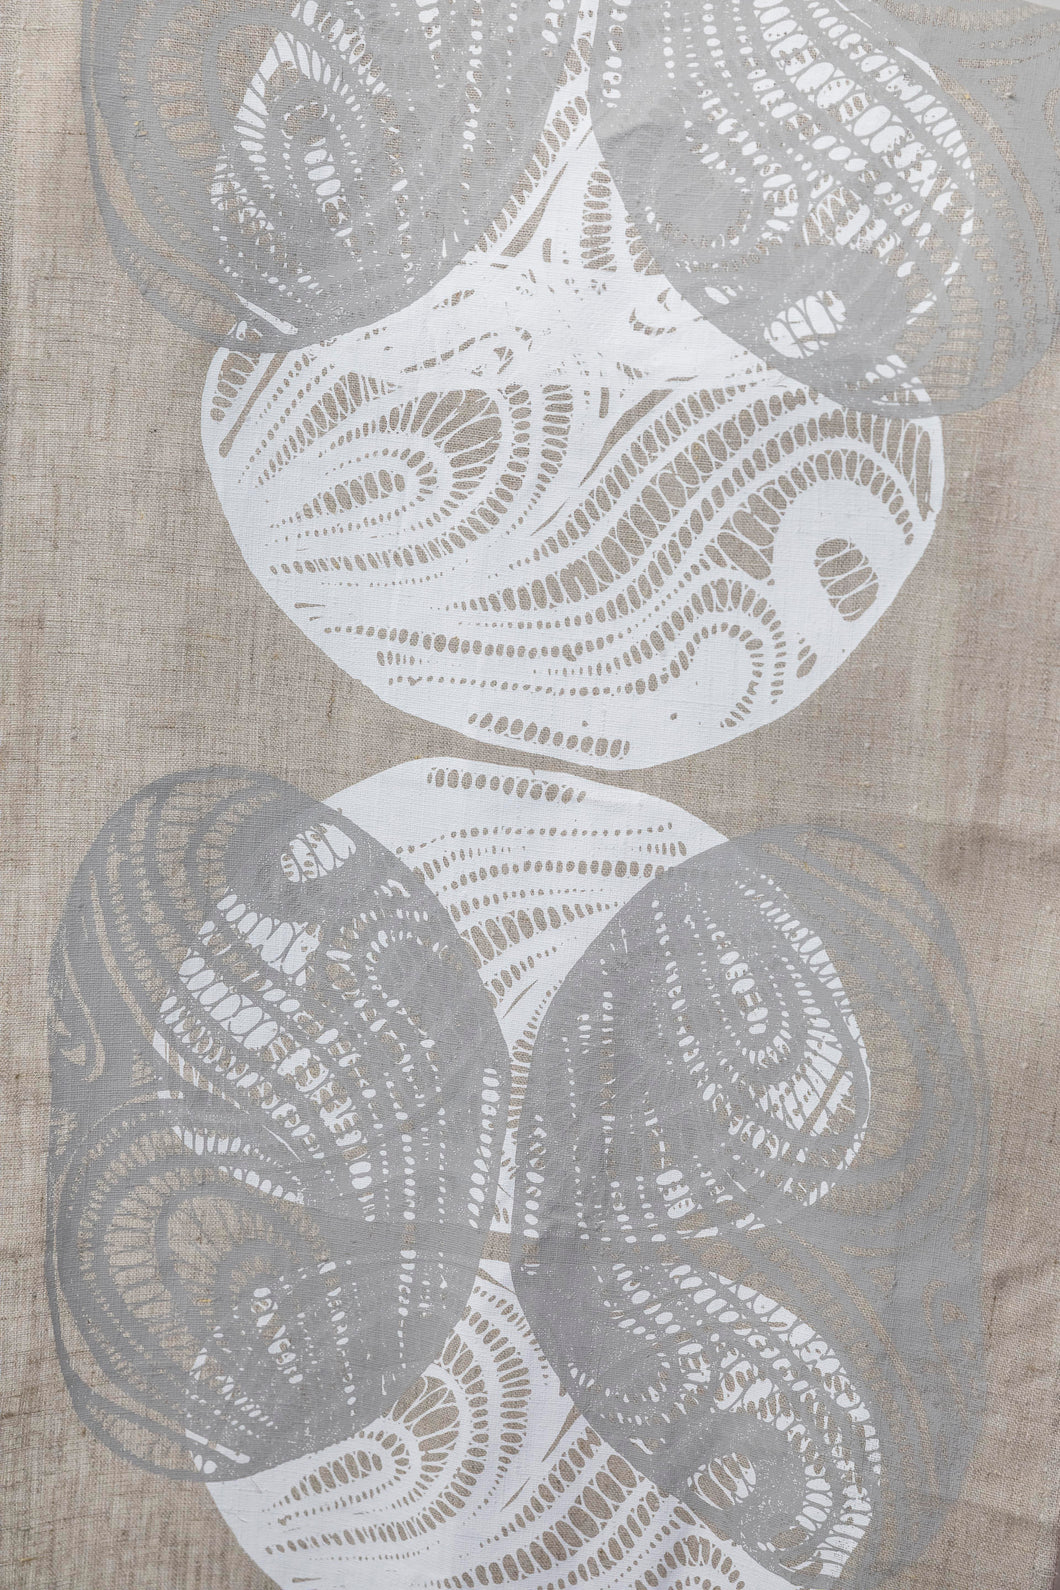 Kinyingarra (Oyster) - Handprinted Table Runner